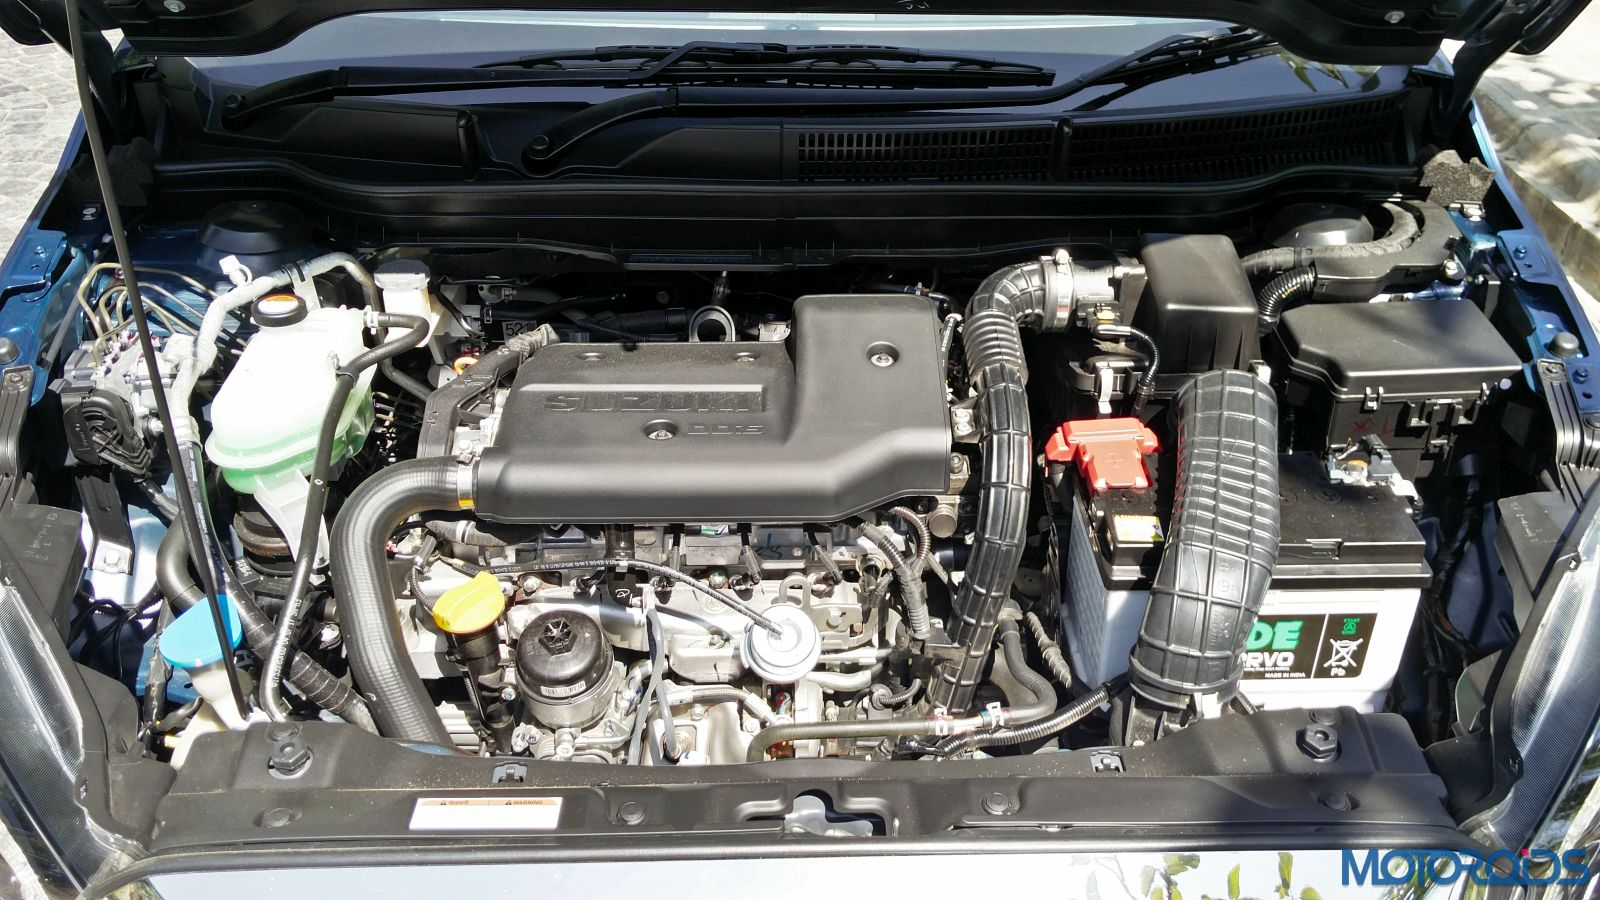 Maruti Suzuki S-Cross Engine